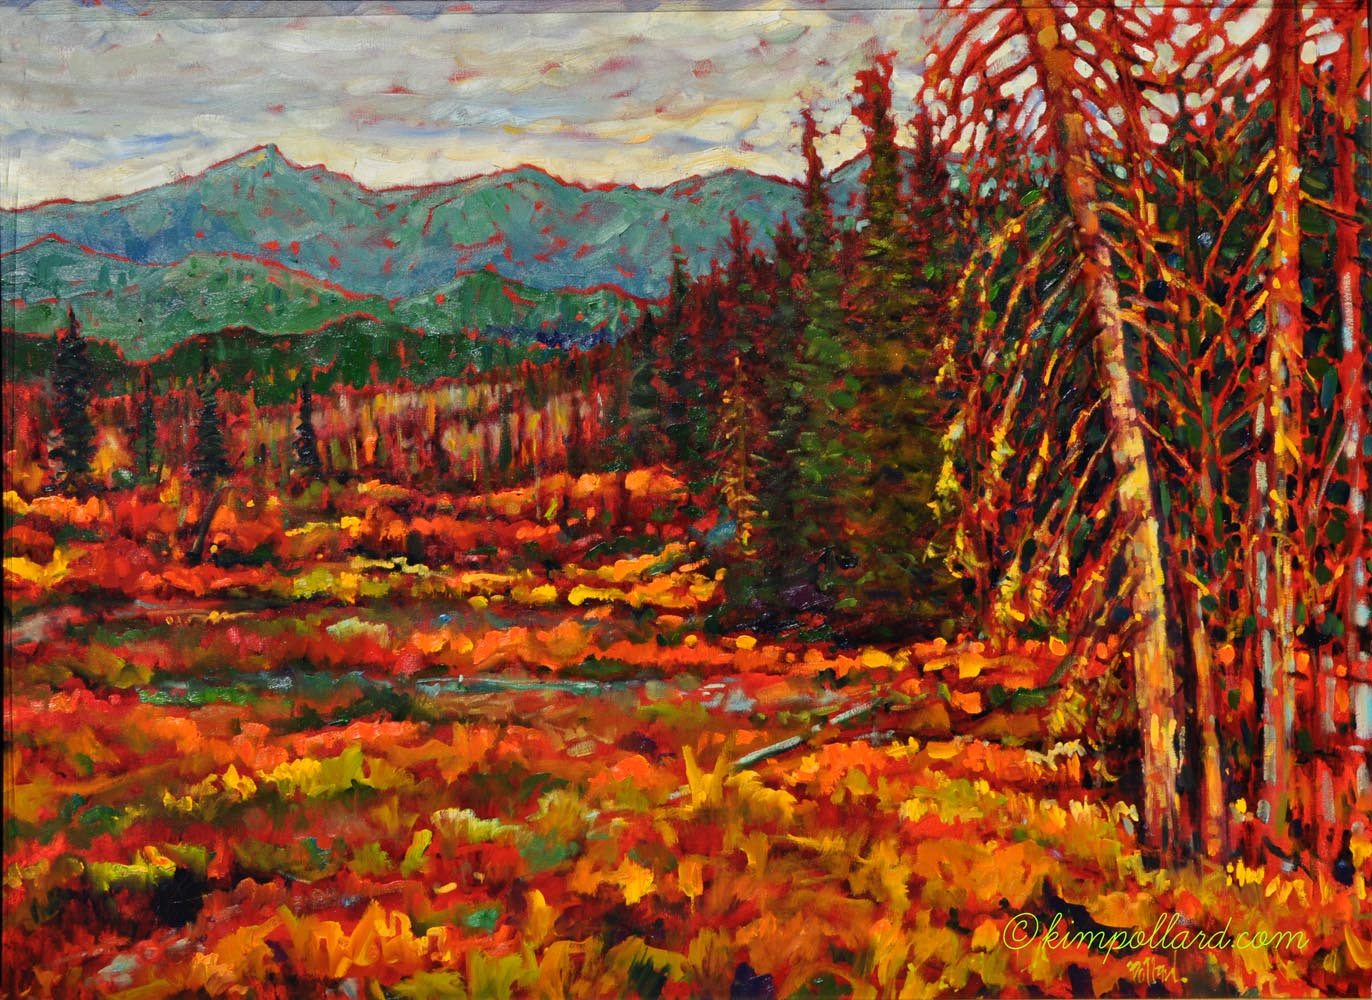 kananaskis country | Landscapes of Western Canada | Artist painter Kim Pollard | Canada | Pacific Northwest